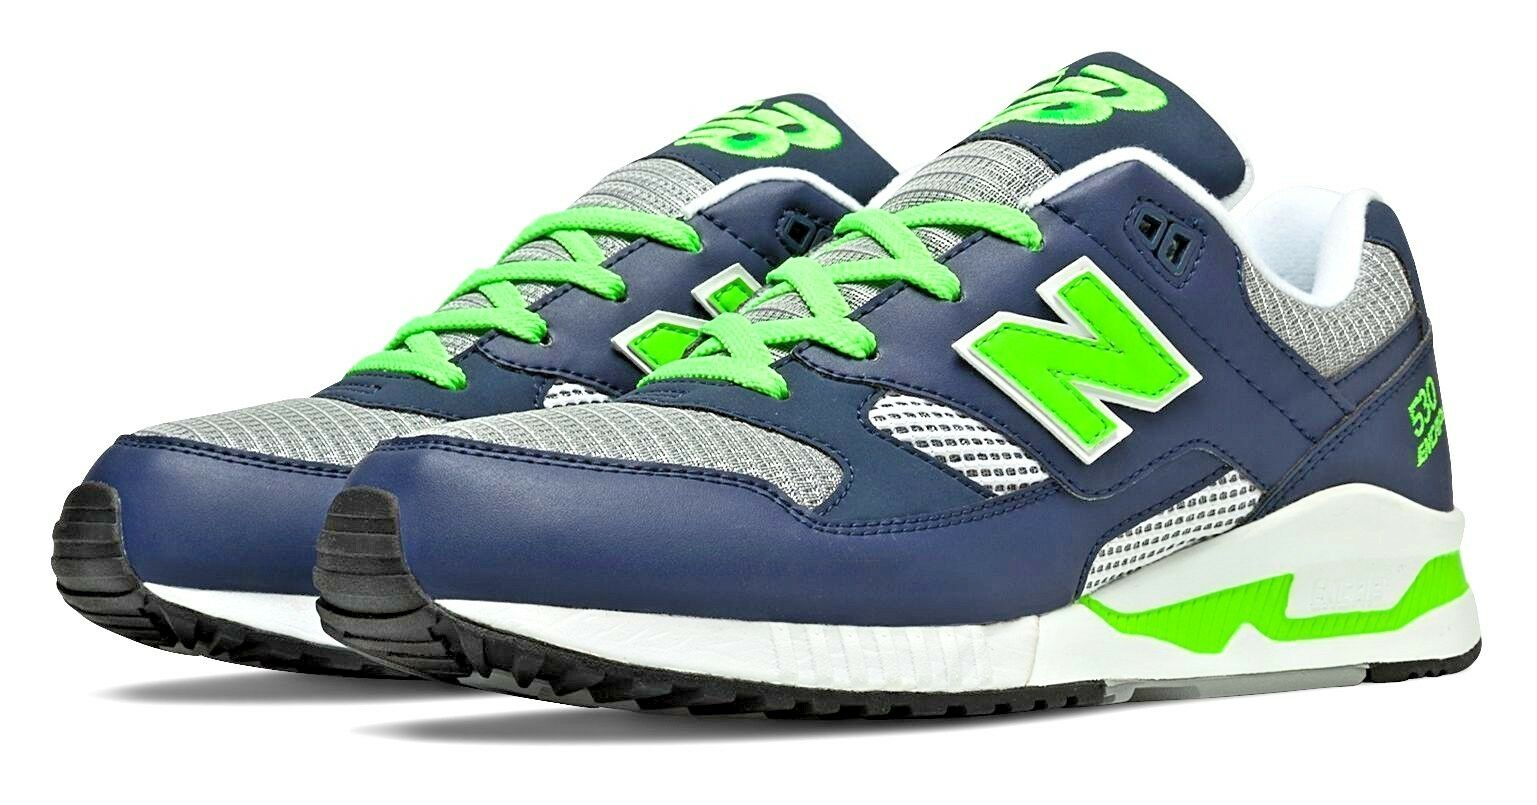 NEW New Balance Men's shoes M530NG 90's Running 530 Grey Navy Green LIFESTYLE